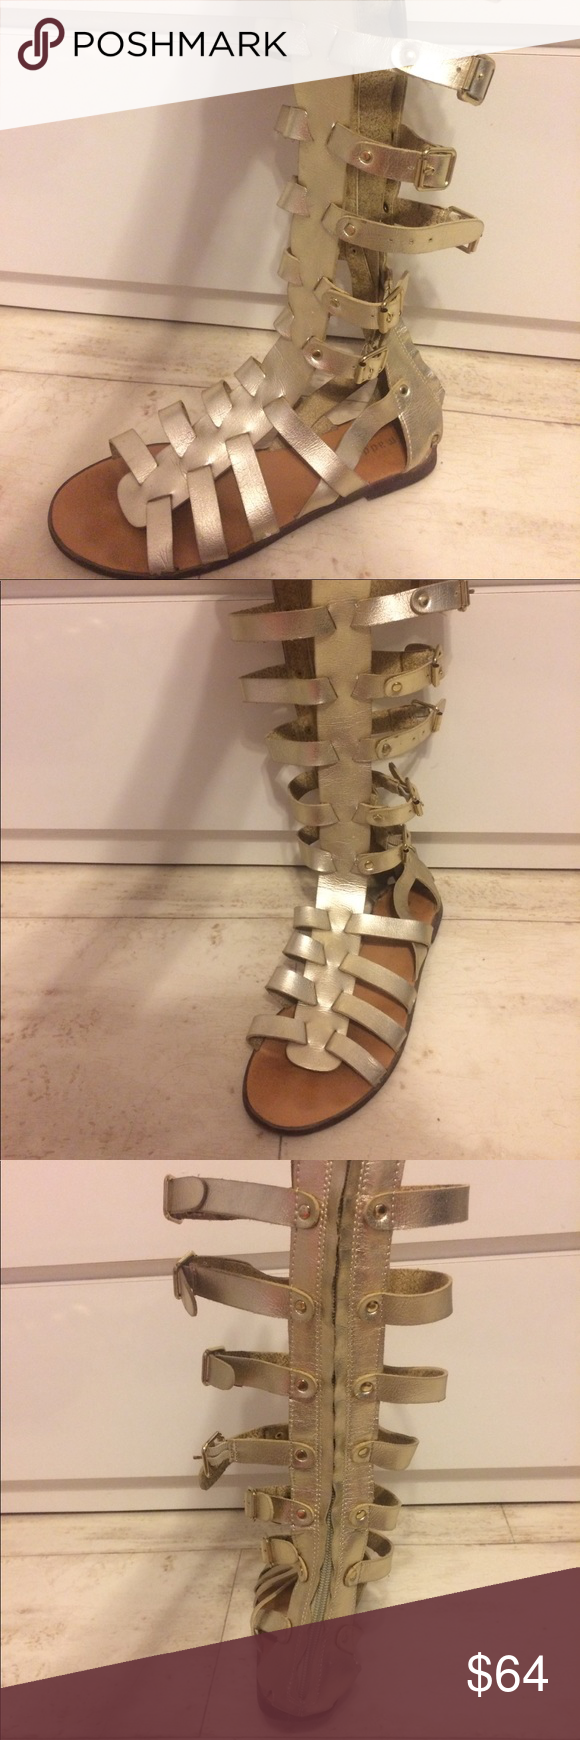 """0ca4d8569dd3 Madden Girl Gold Penna Tall Gladiator Sandals Gold vegan leather with  peep-toe and 14"""" shaft with adjustable gold buckles. Back zipper with 0.25""""  rubber ..."""